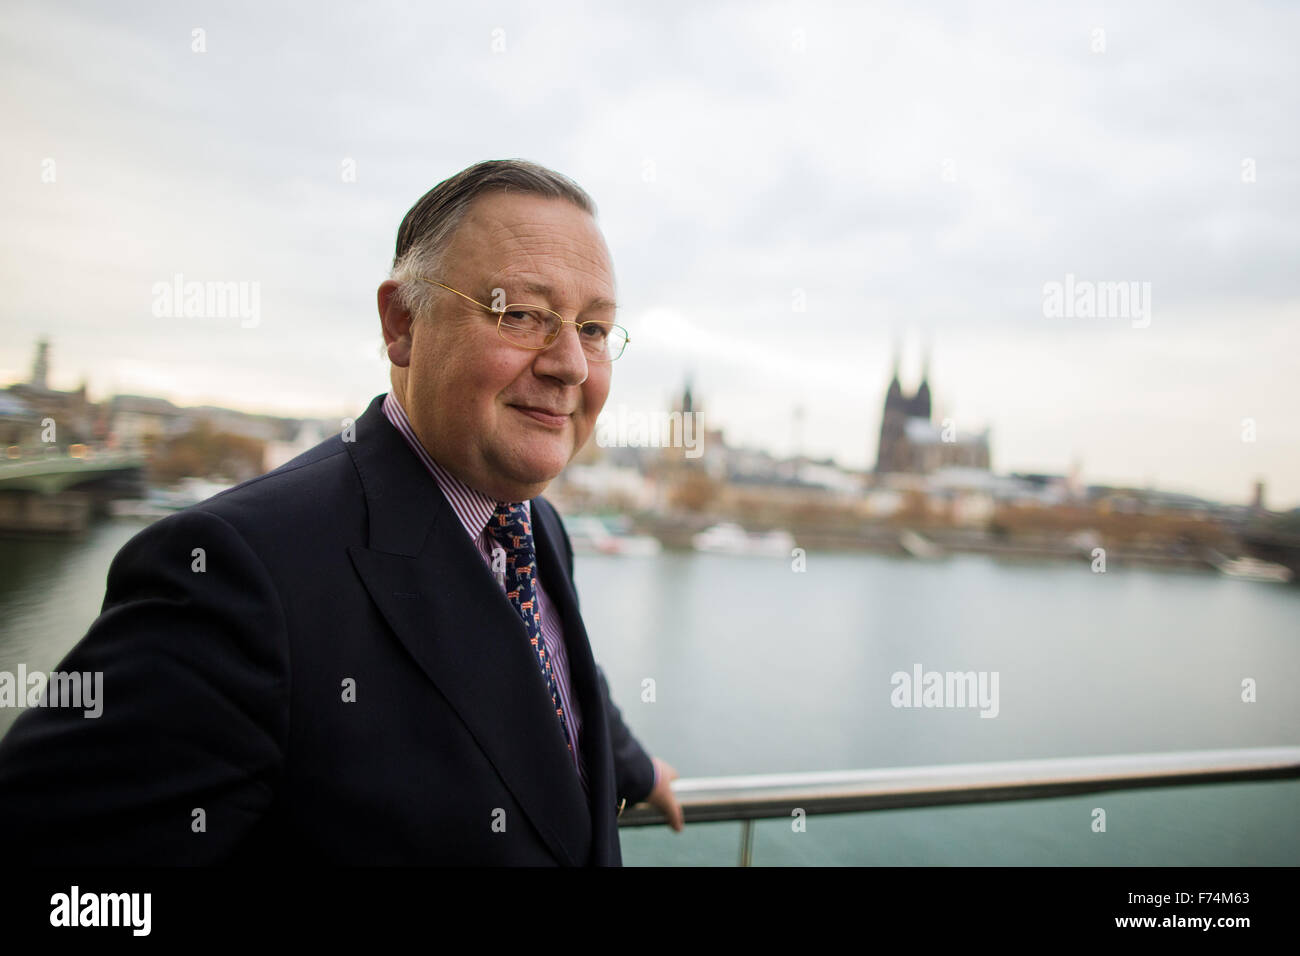 Cologne, Germany. 12th Nov, 2015. Hans-Gerd Jauch, insolvency administrator for Arcandor, poses on the balcony of - Stock Image